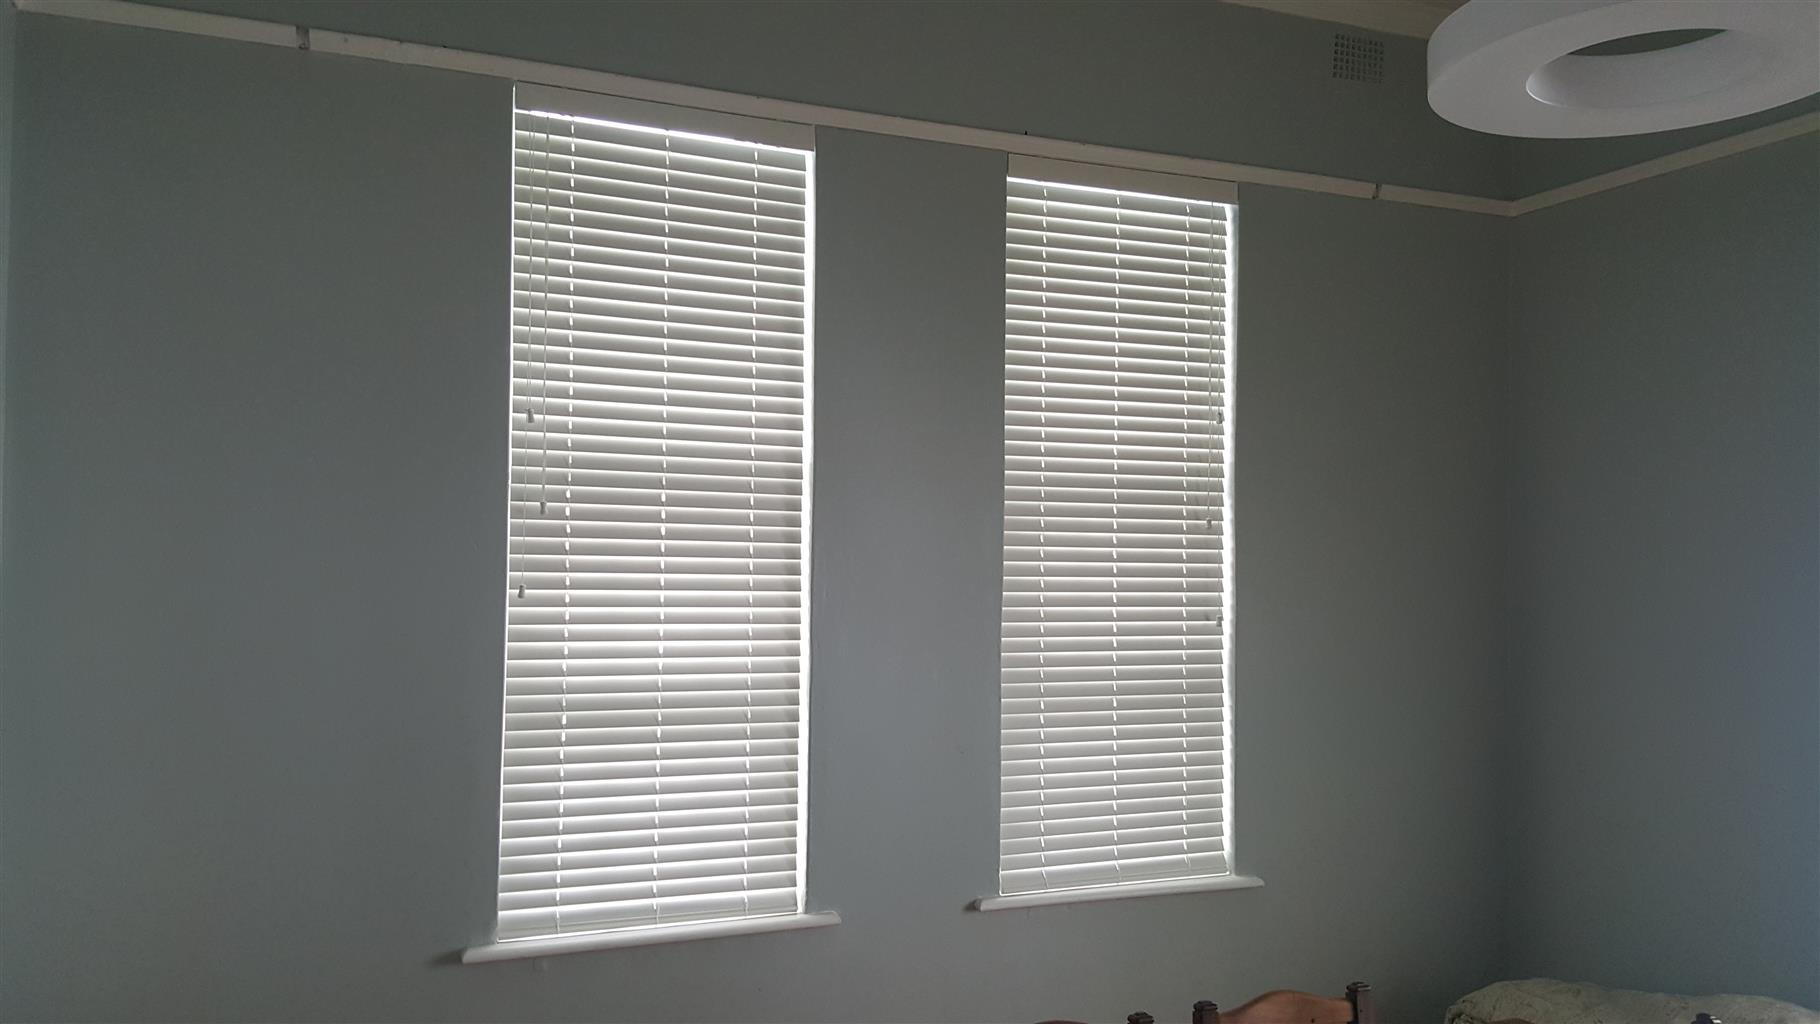 Blinds, Outdoor Blinds, Shutters and Pool Covers